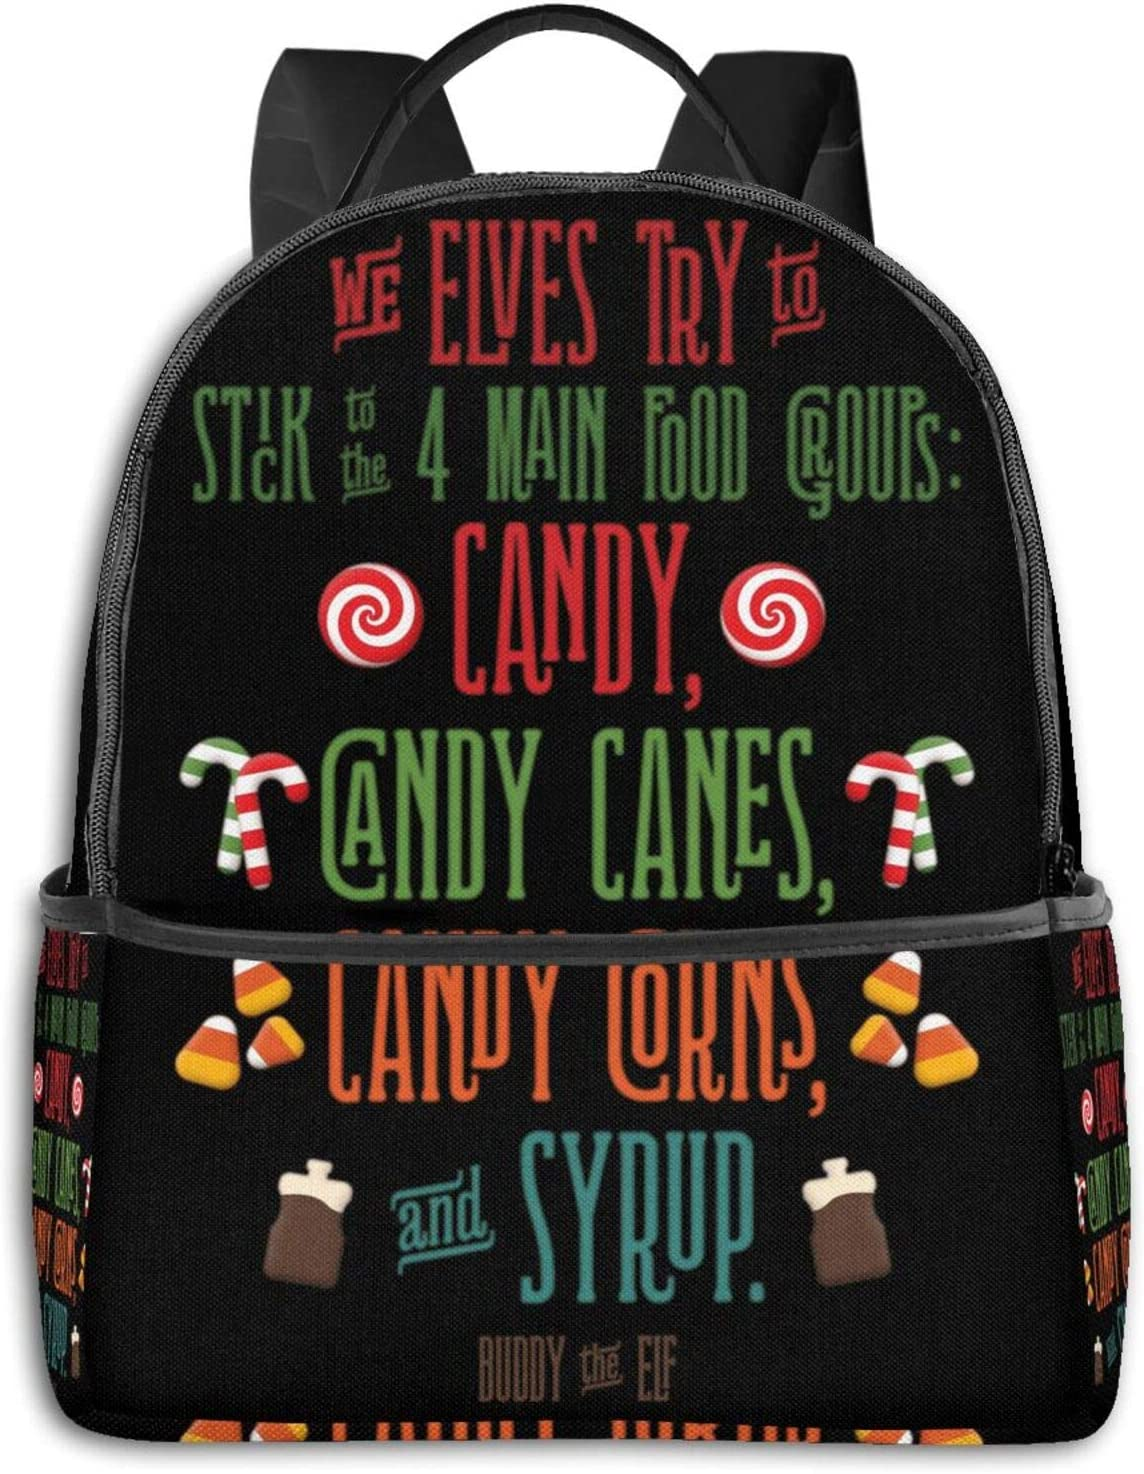 Buddy The Elf - The Four Main Food Groups Pullover Hoodie Student School Bag School Cycling Leisure Travel Camping Outdoor Backpack